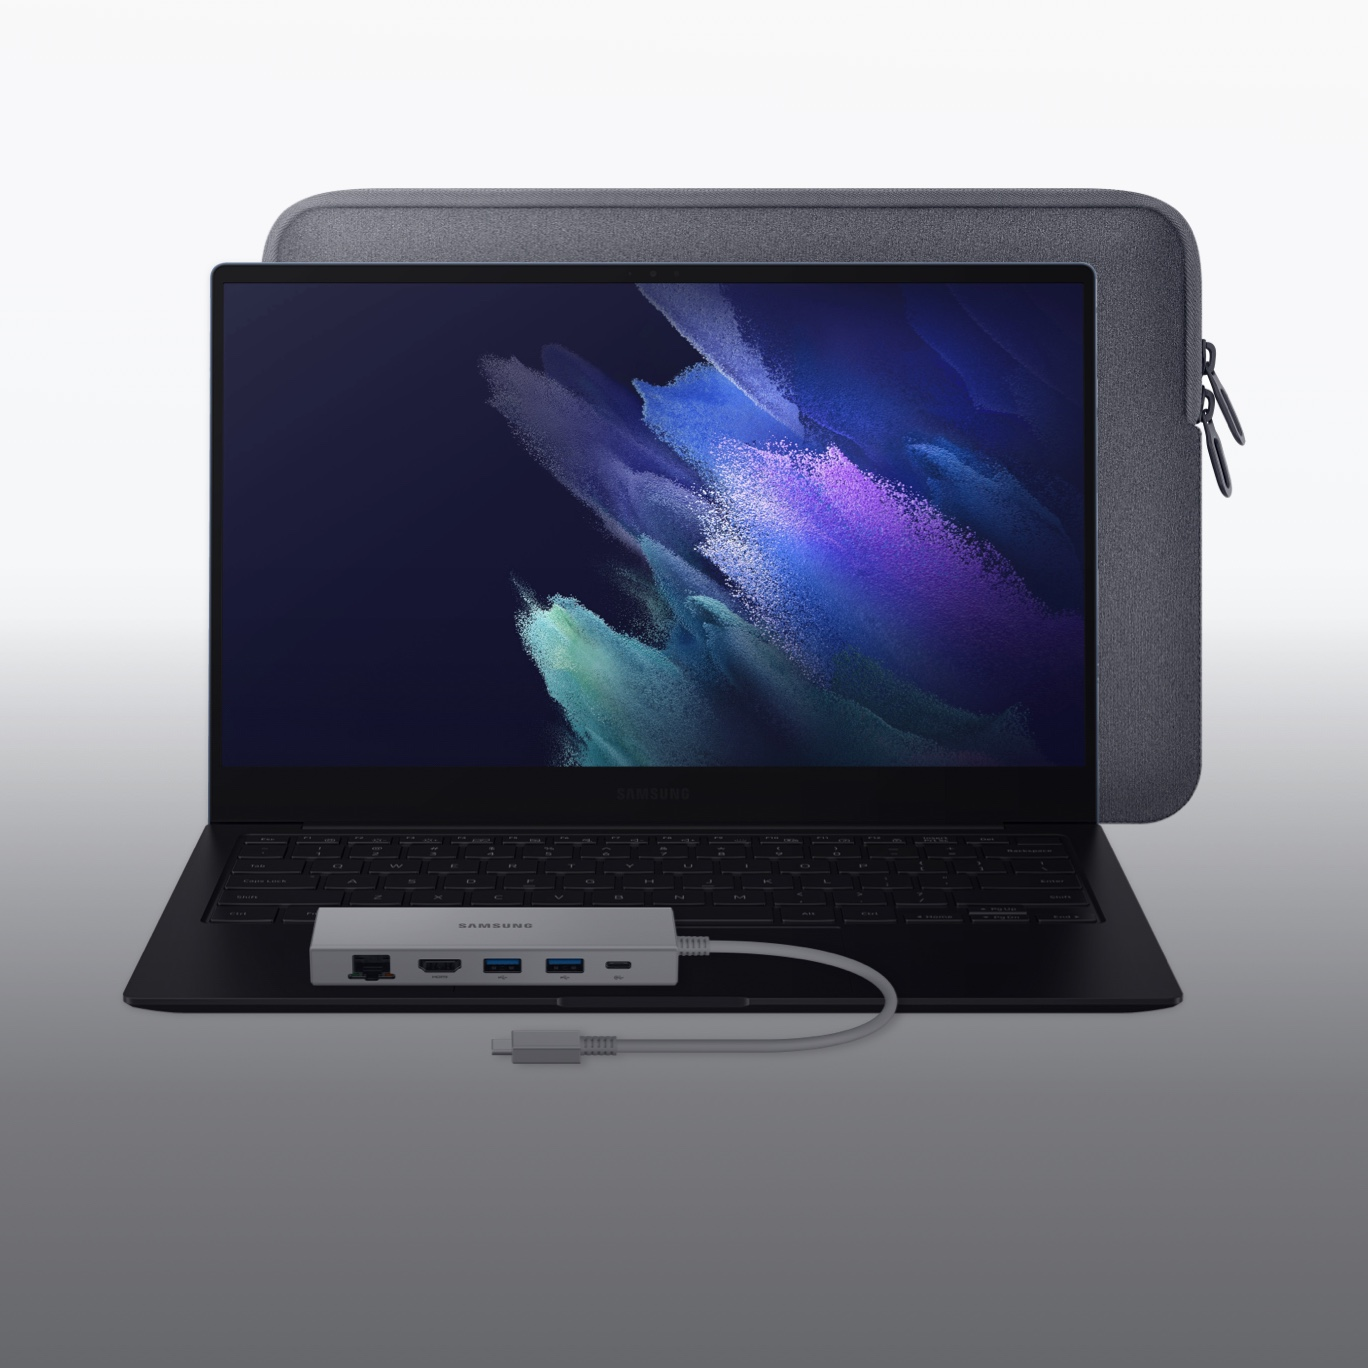 Buy Galaxy Book Pro for business and get up to $100 credit towards eligible accessories